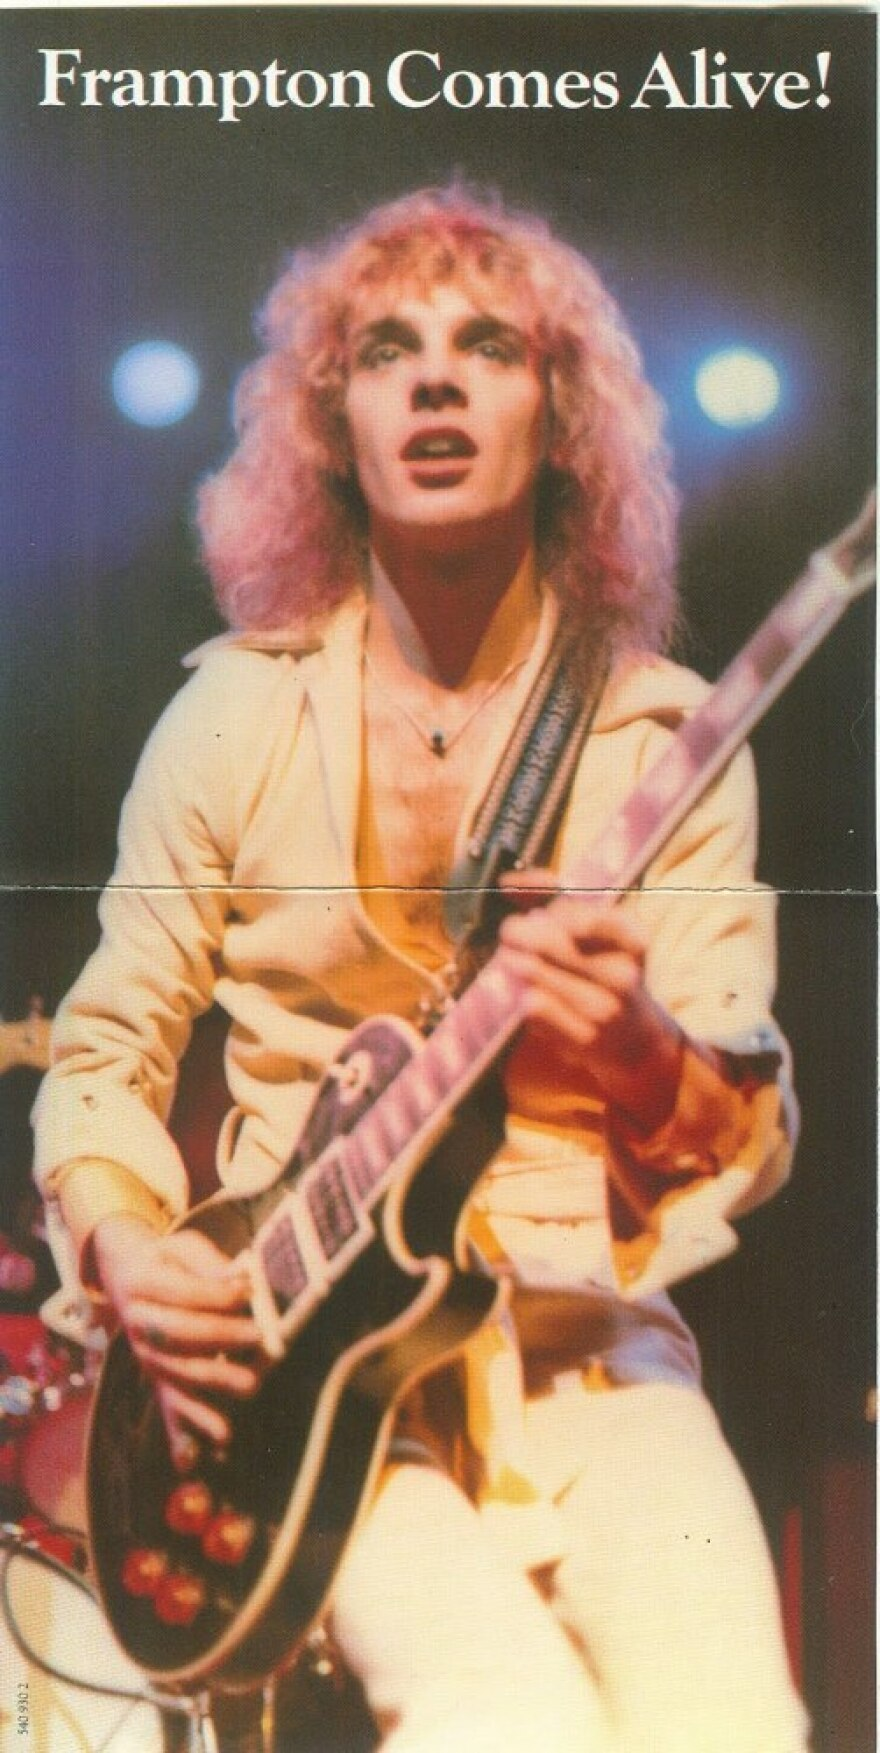 The unfolded LP cover of <em>Frampton Comes Alive!</em>, featuring Peter Frampton and his custom Les Paul.